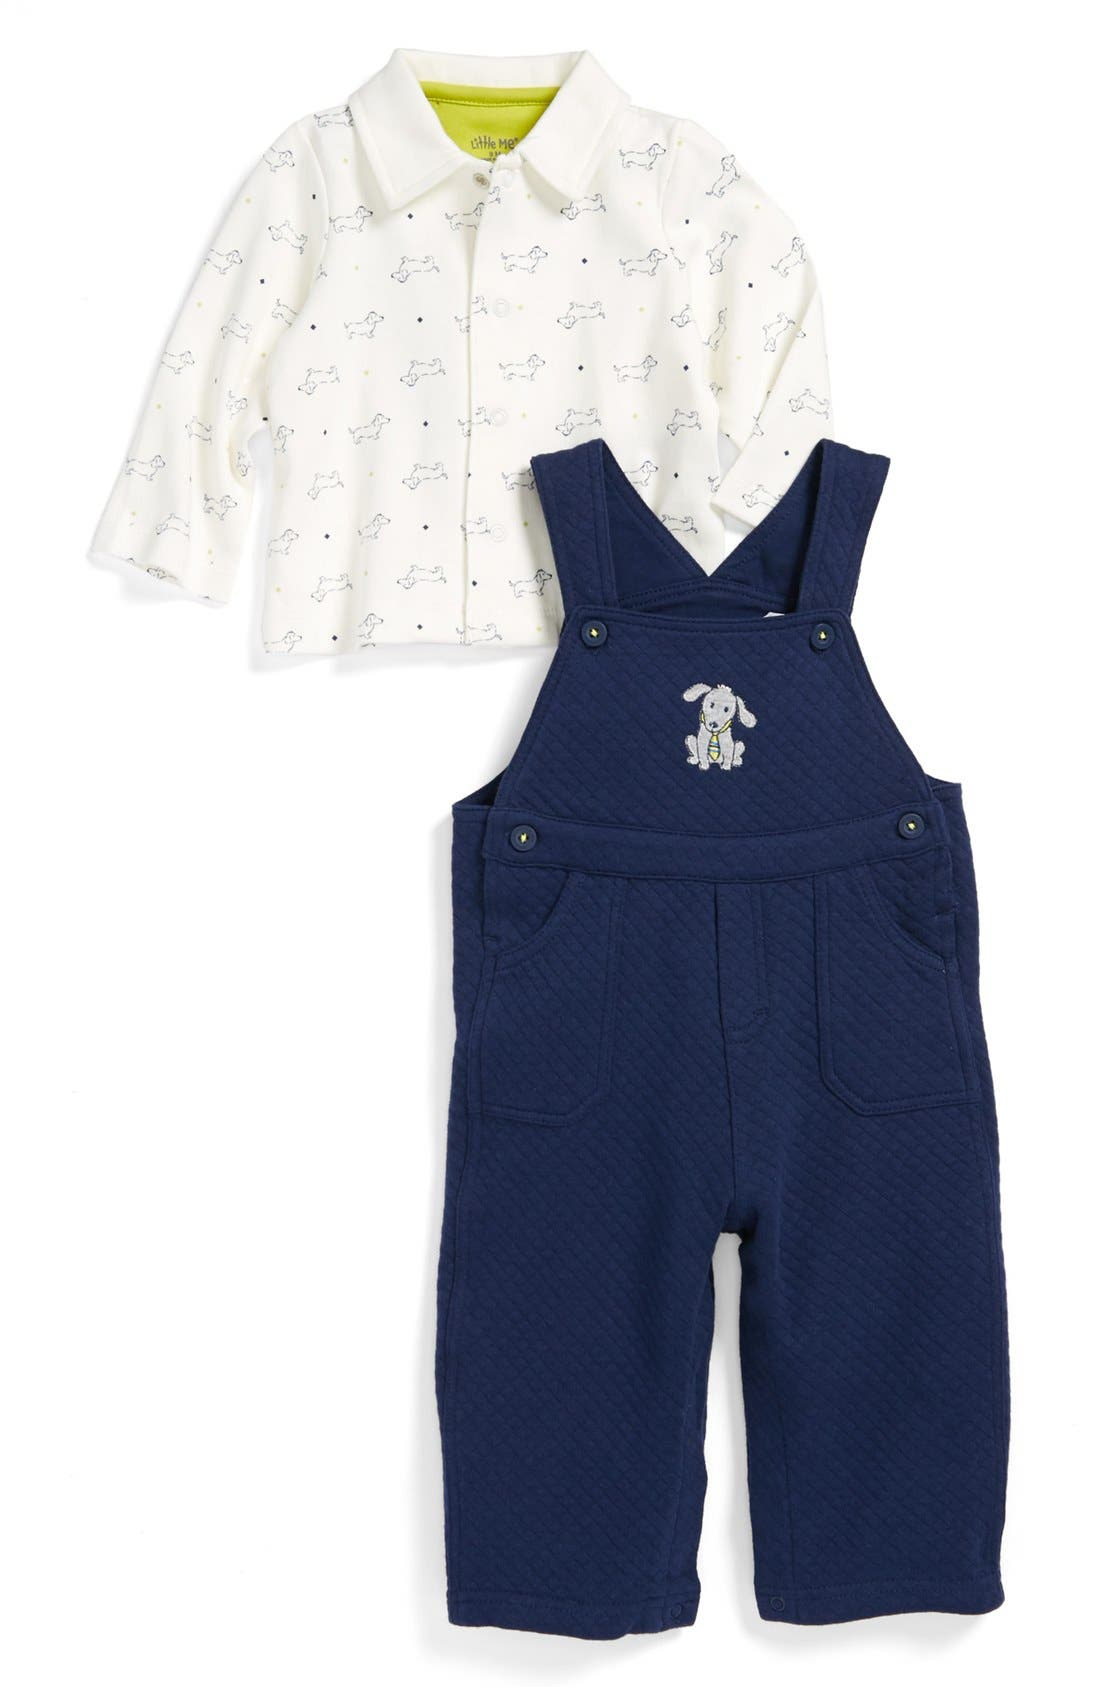 Alternate Image 1 Selected - Little Me 'Dashing Pups' Shirt & Overalls (Baby Boys)